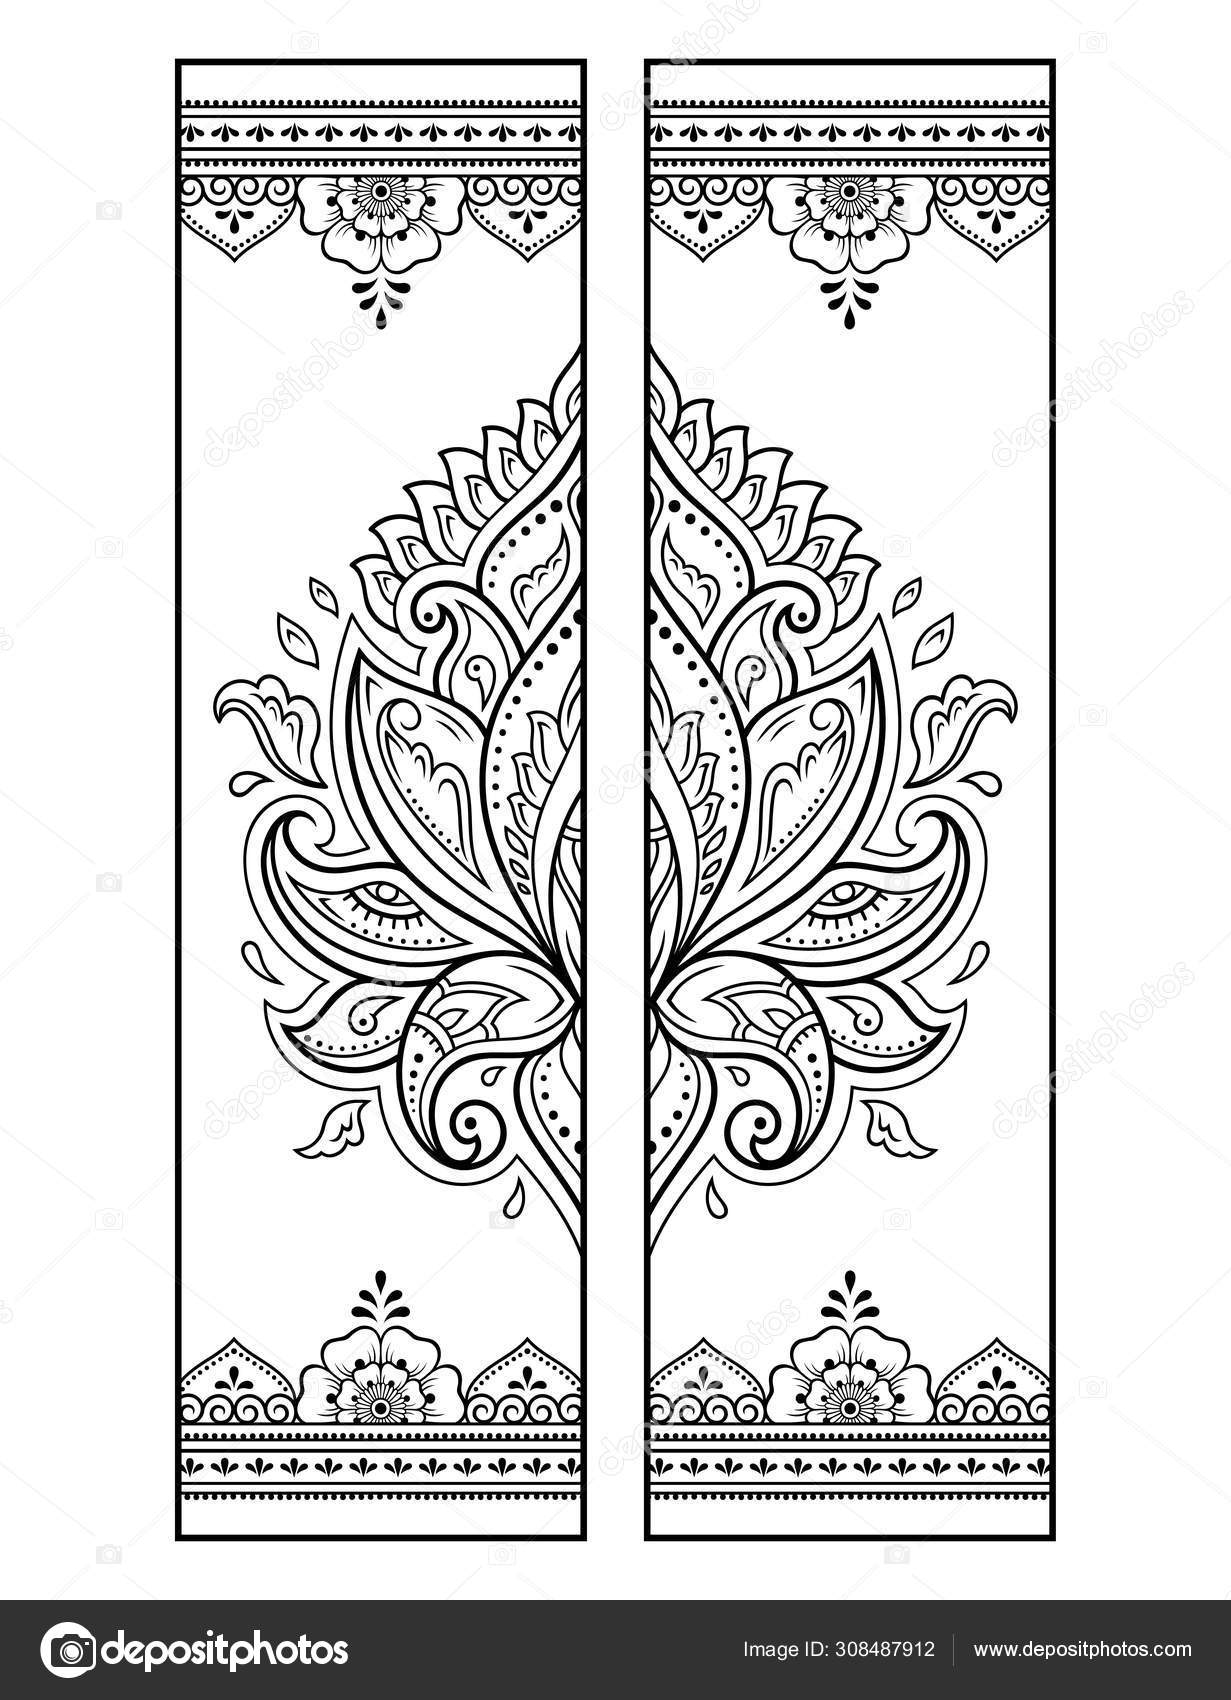 Printable Bookmark Coloring Set Black White Labels Lotus ...